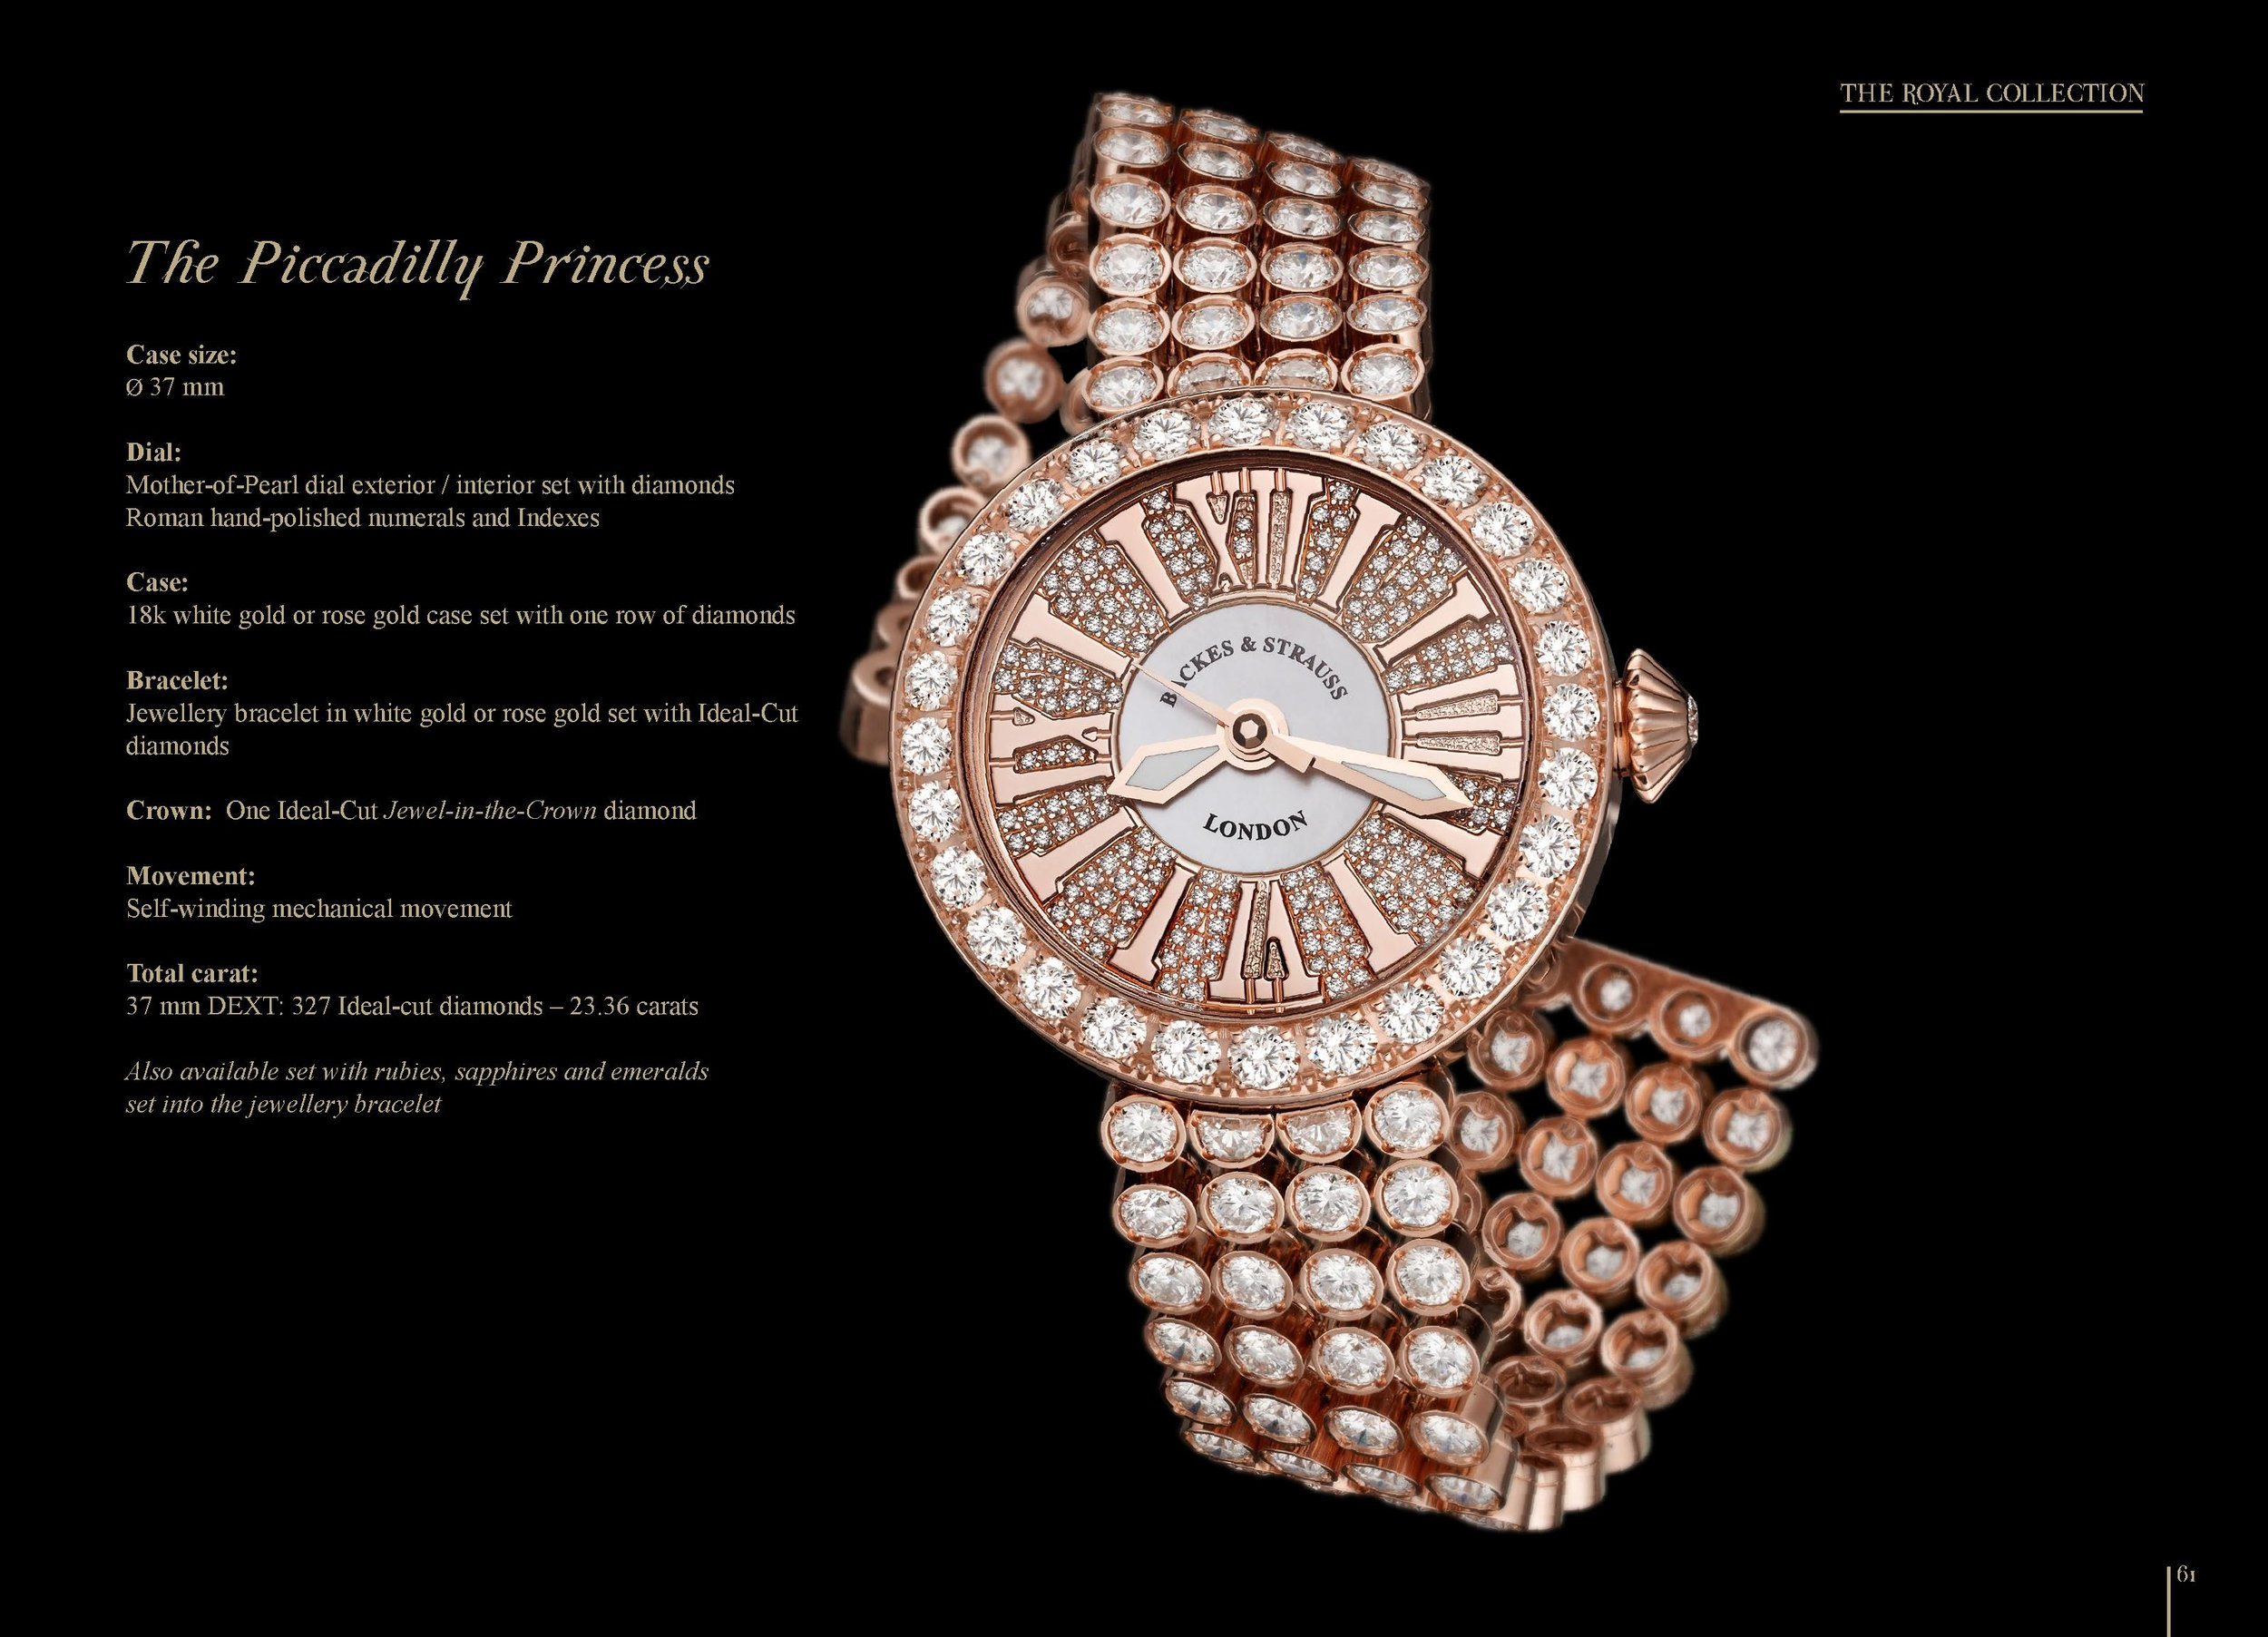 The Piccadilly Princess watch